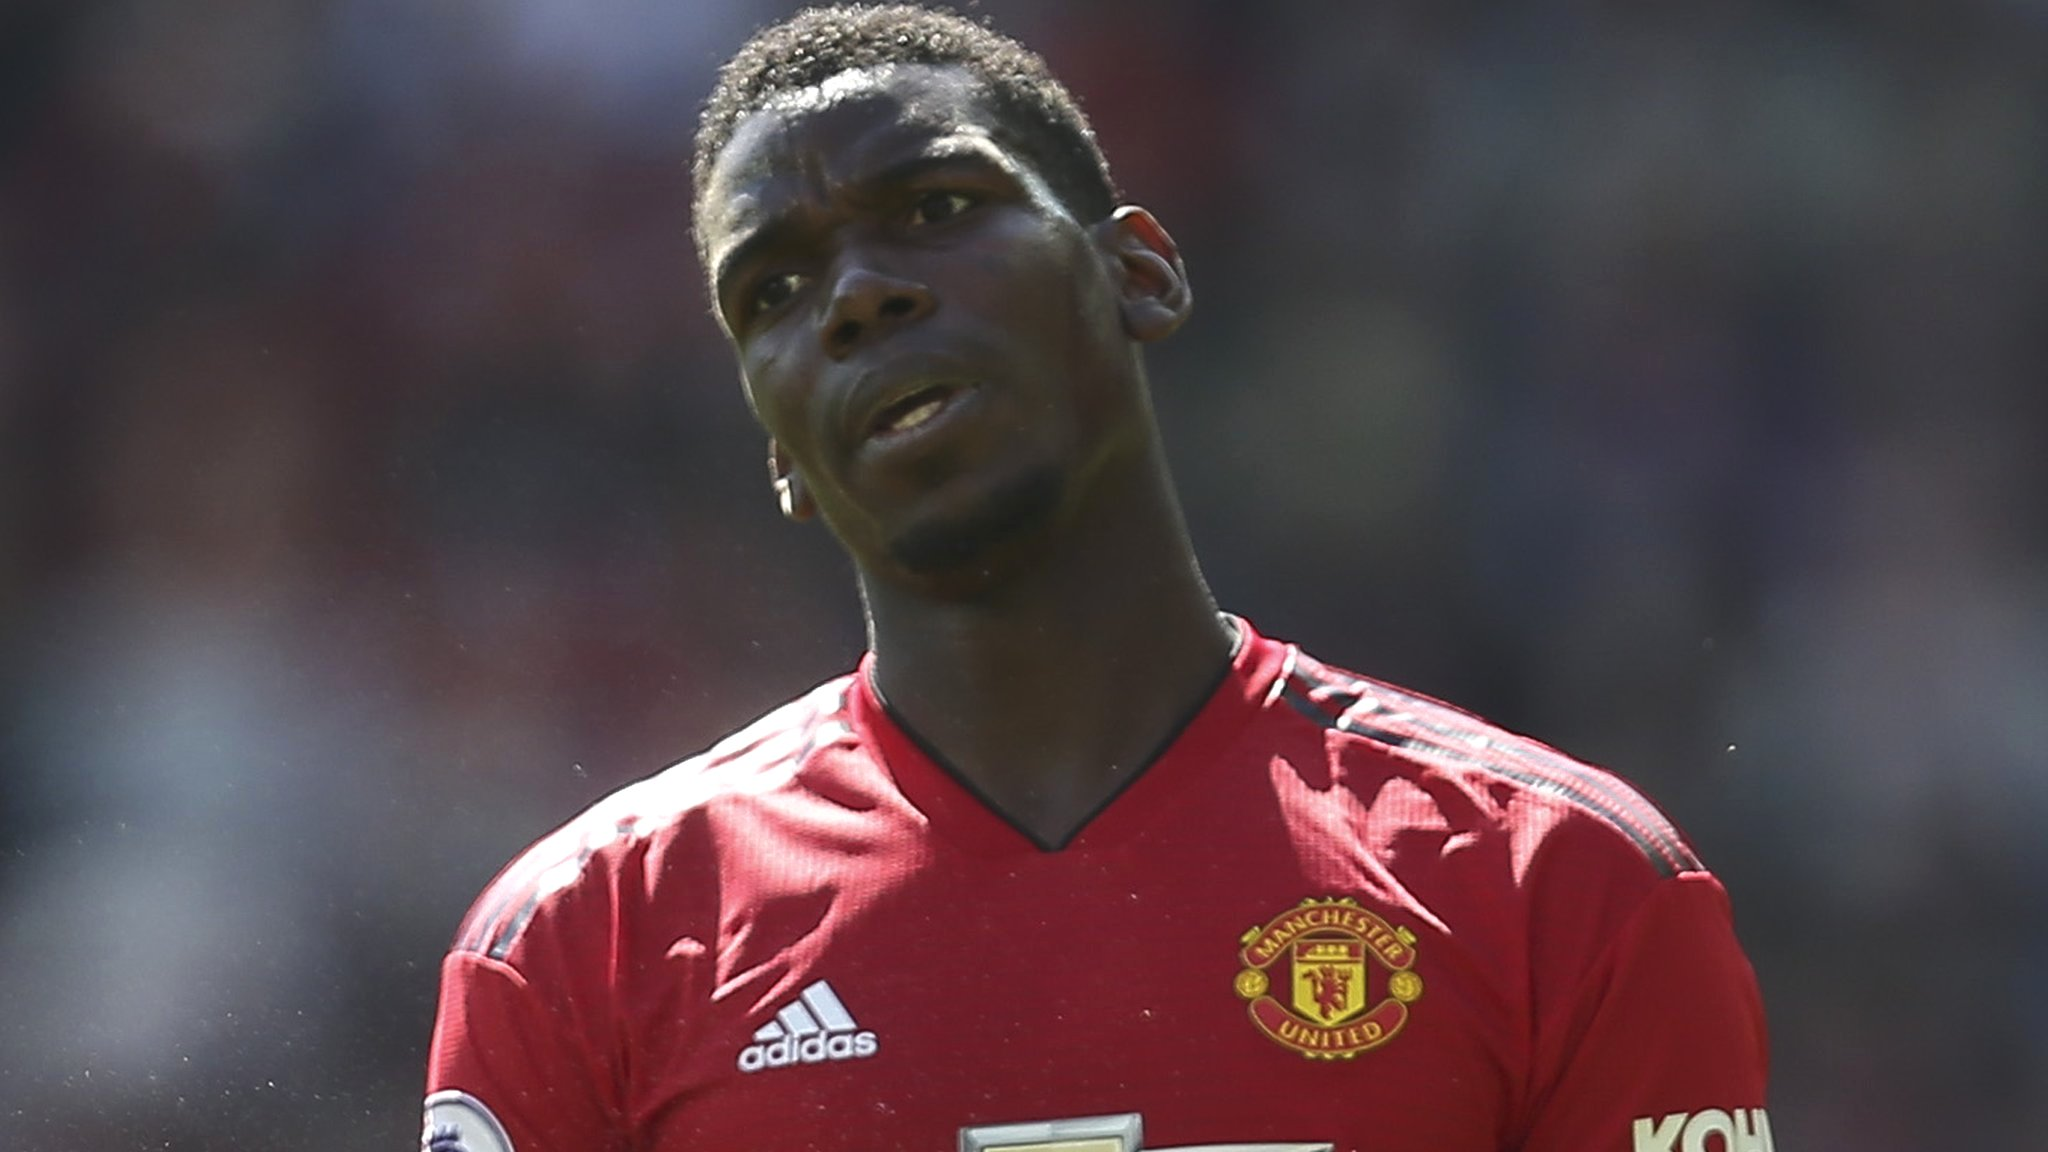 Paul Pogba: Man Utd's dilemma - should they sell or keep midfielder?